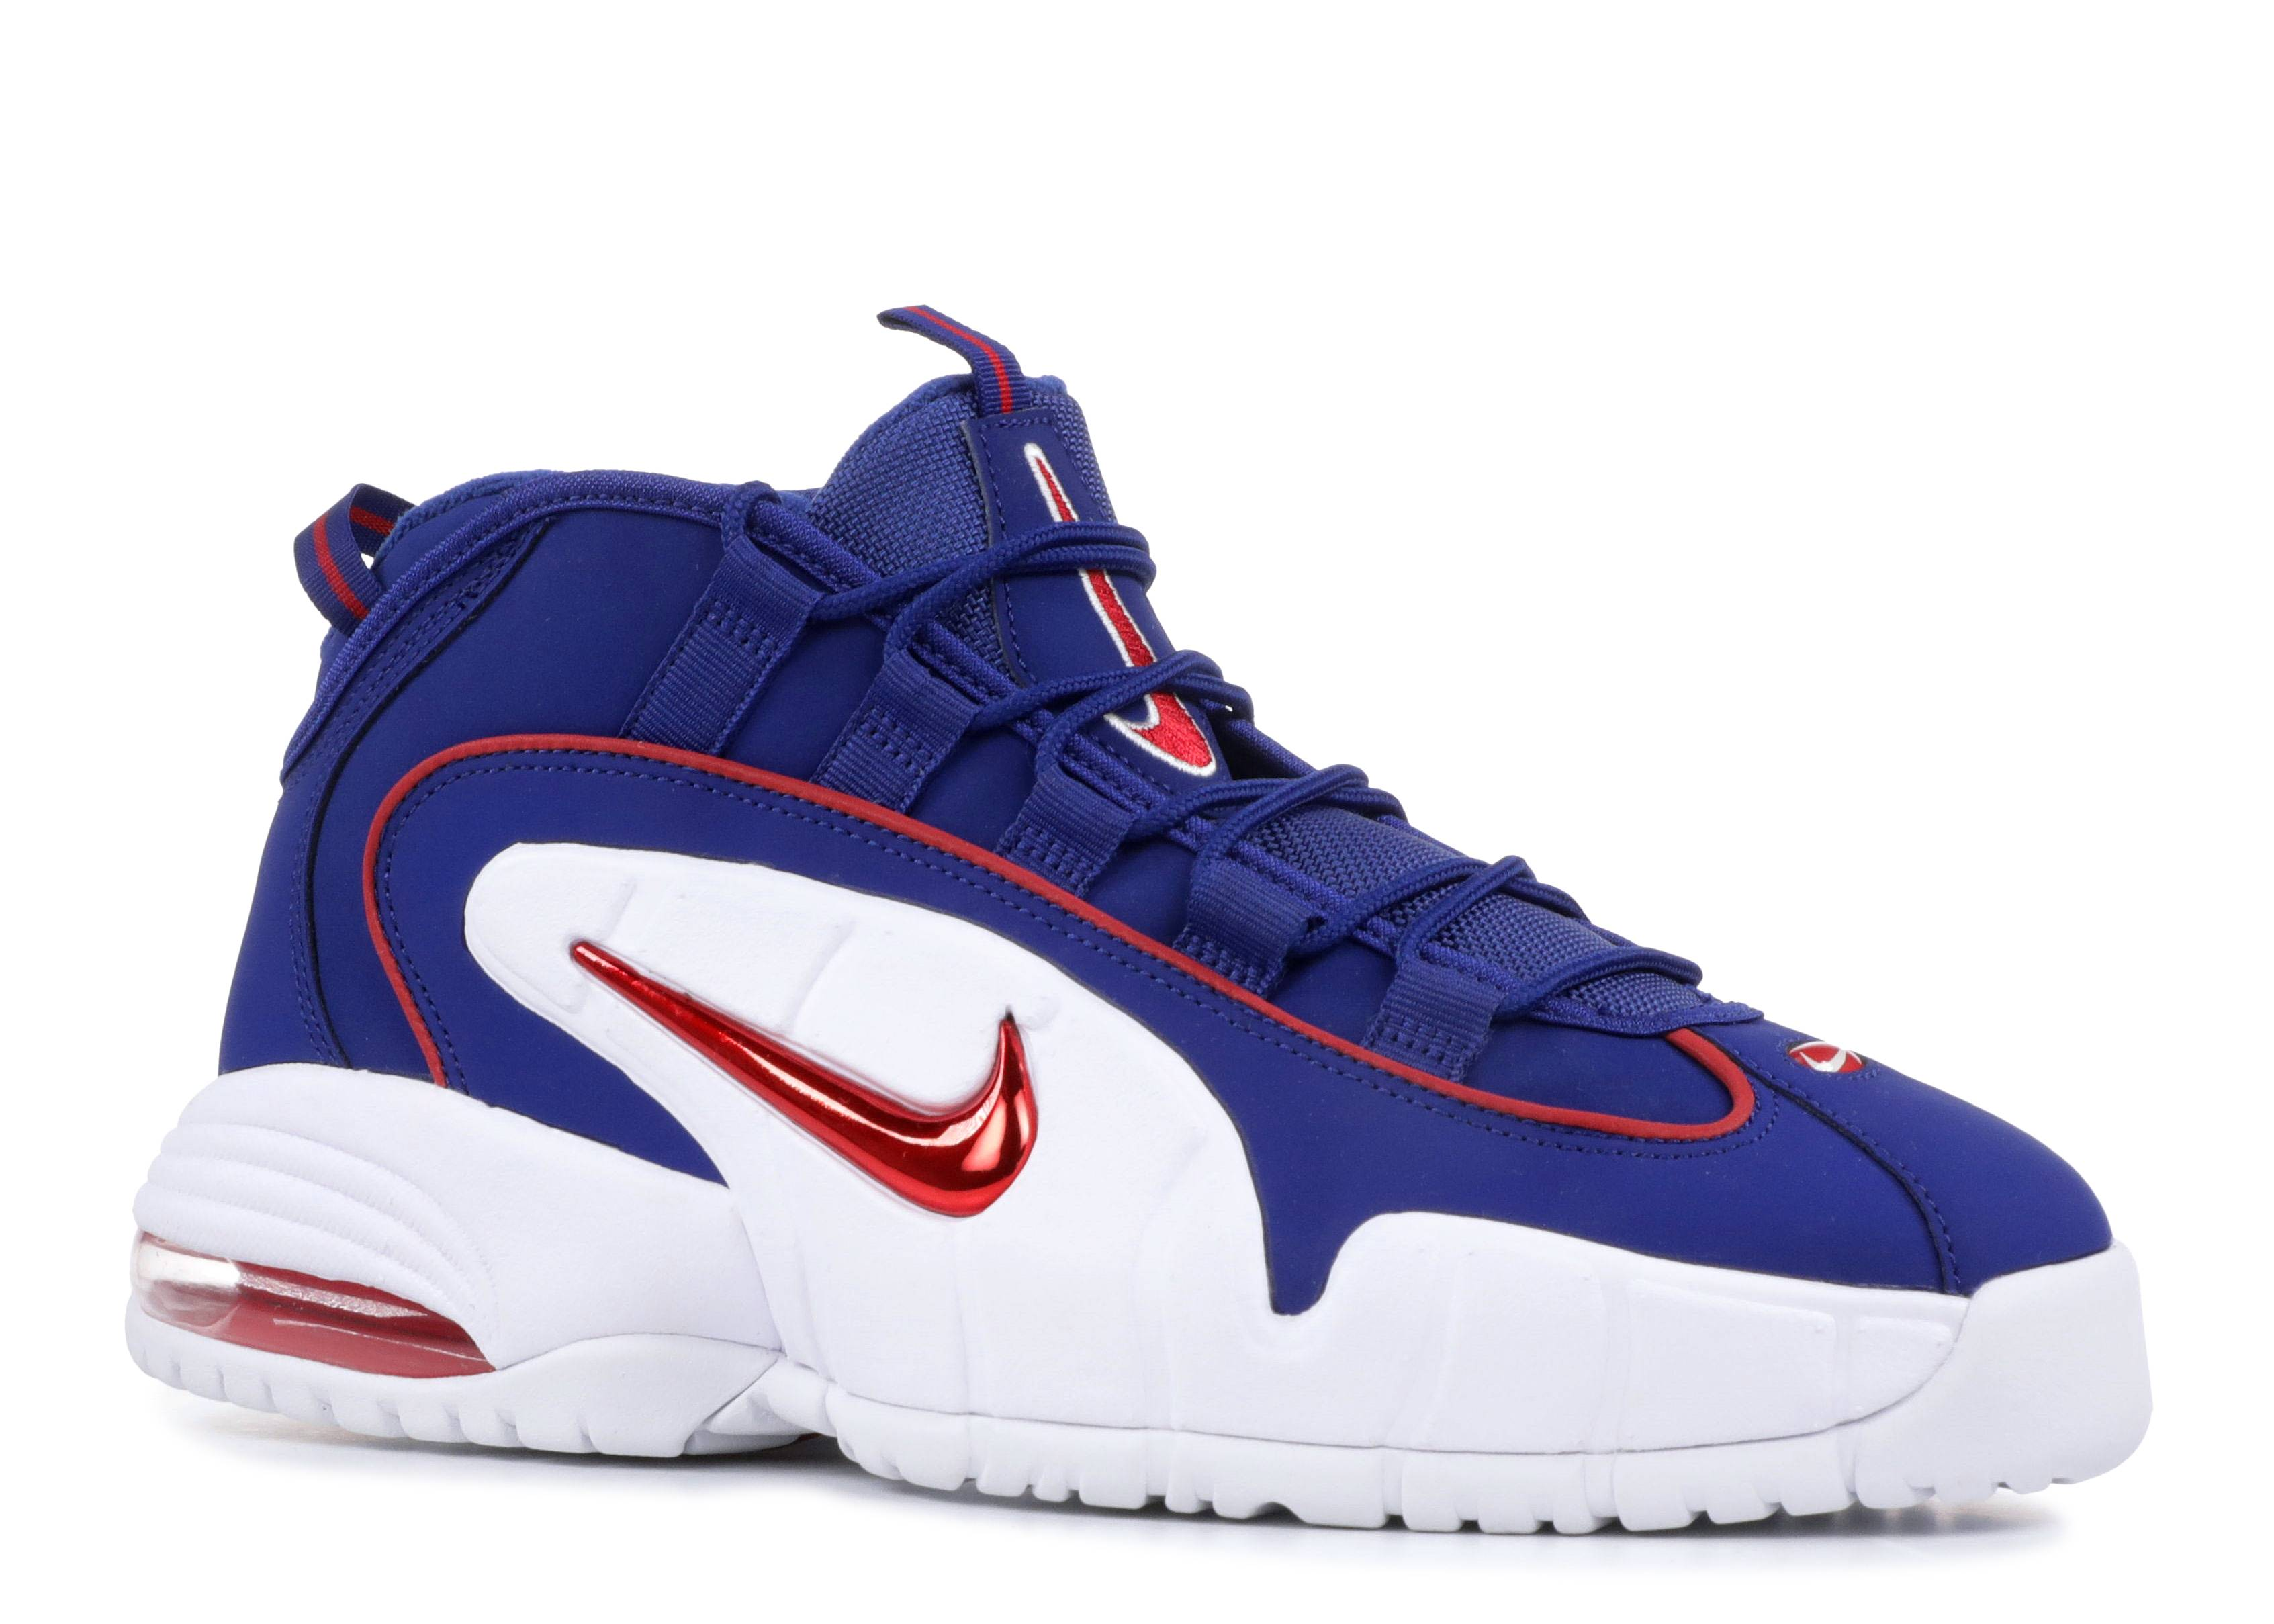 new styles f6229 282df discount image is loading nike air max penny 1 1 2 cent 98039 c3ede  best  price air max penny lil penny 72583 2ceb1